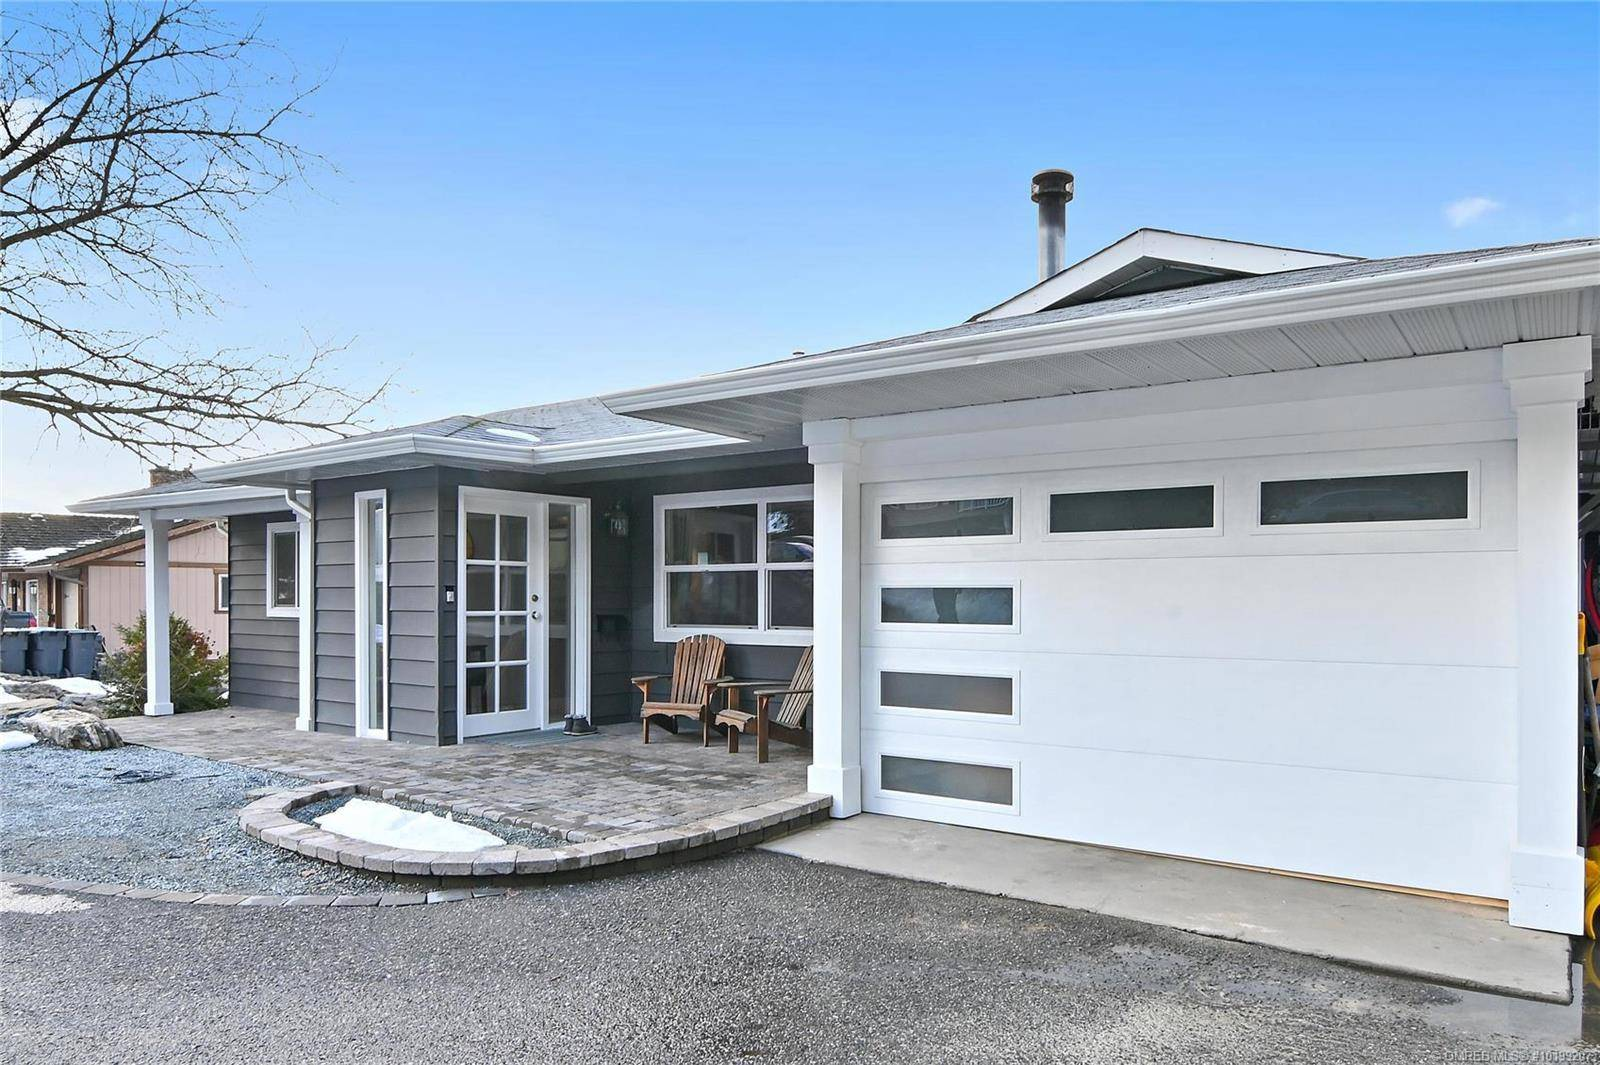 House for sale at 2536 Packers Rd Kelowna British Columbia - MLS: 10199207